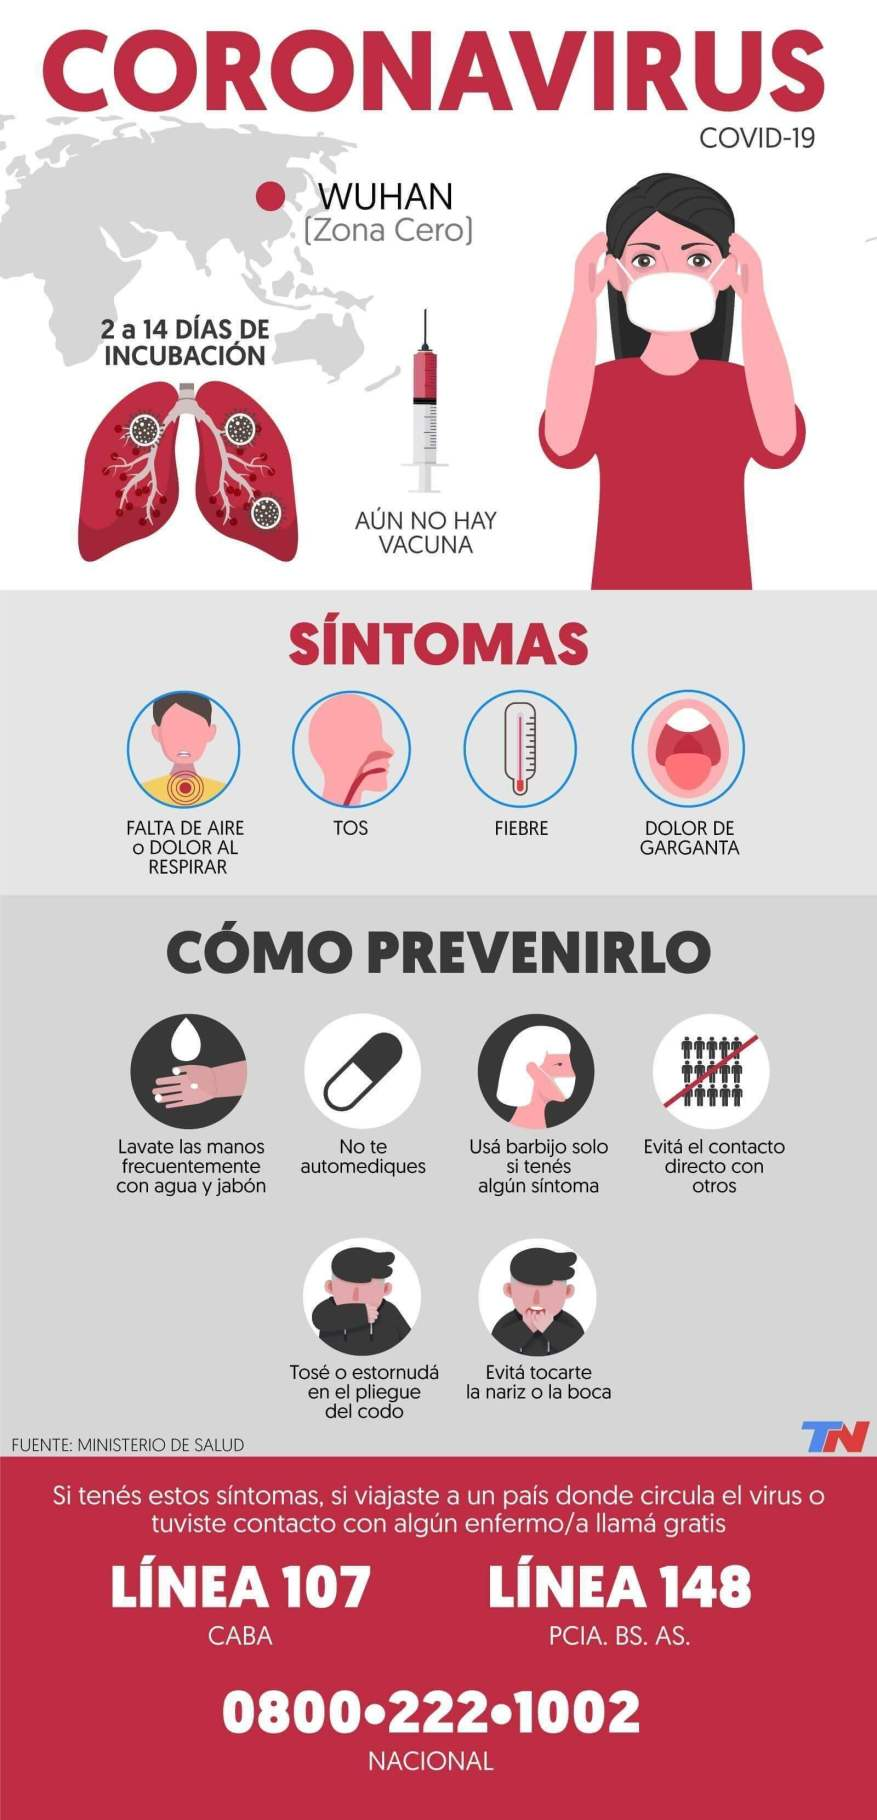 What are the symptoms of coronavirus and how is it prevented (Photo: Infographic TN.com.ar).